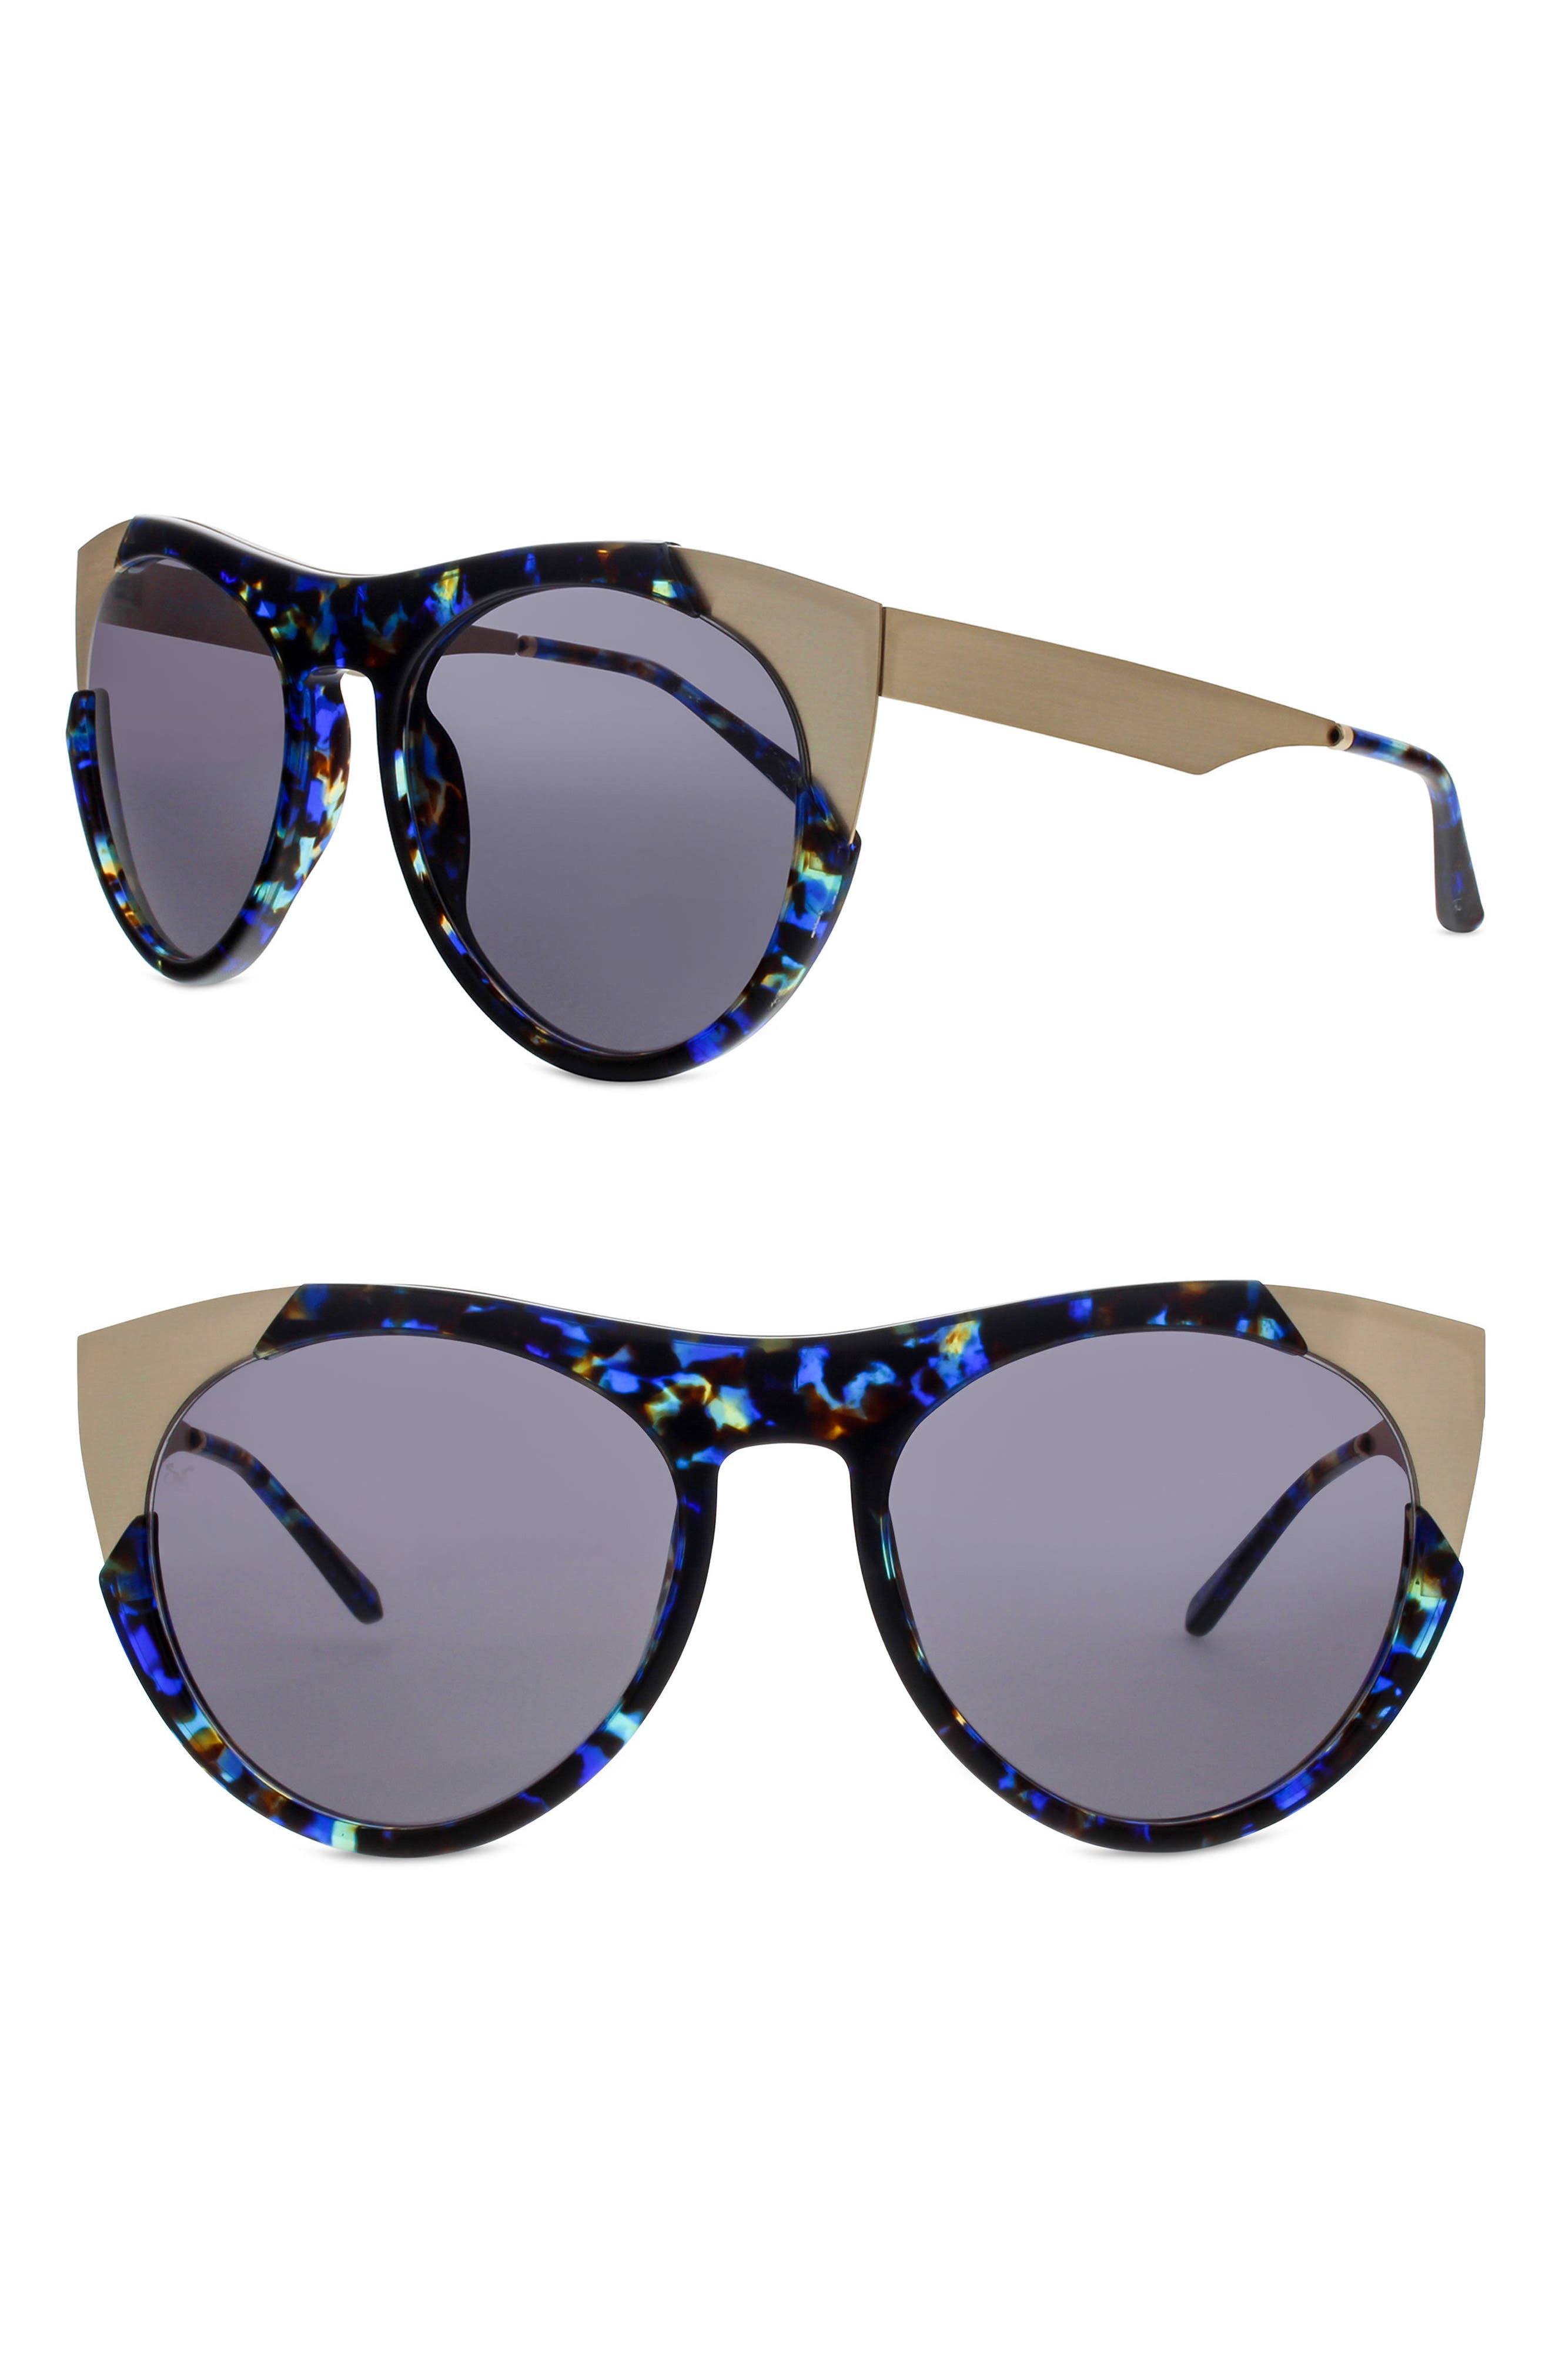 Zoubisou 53mm Cat Eye Sunglasses,                         Main,                         color, Blue Glam/ Brushed Gold